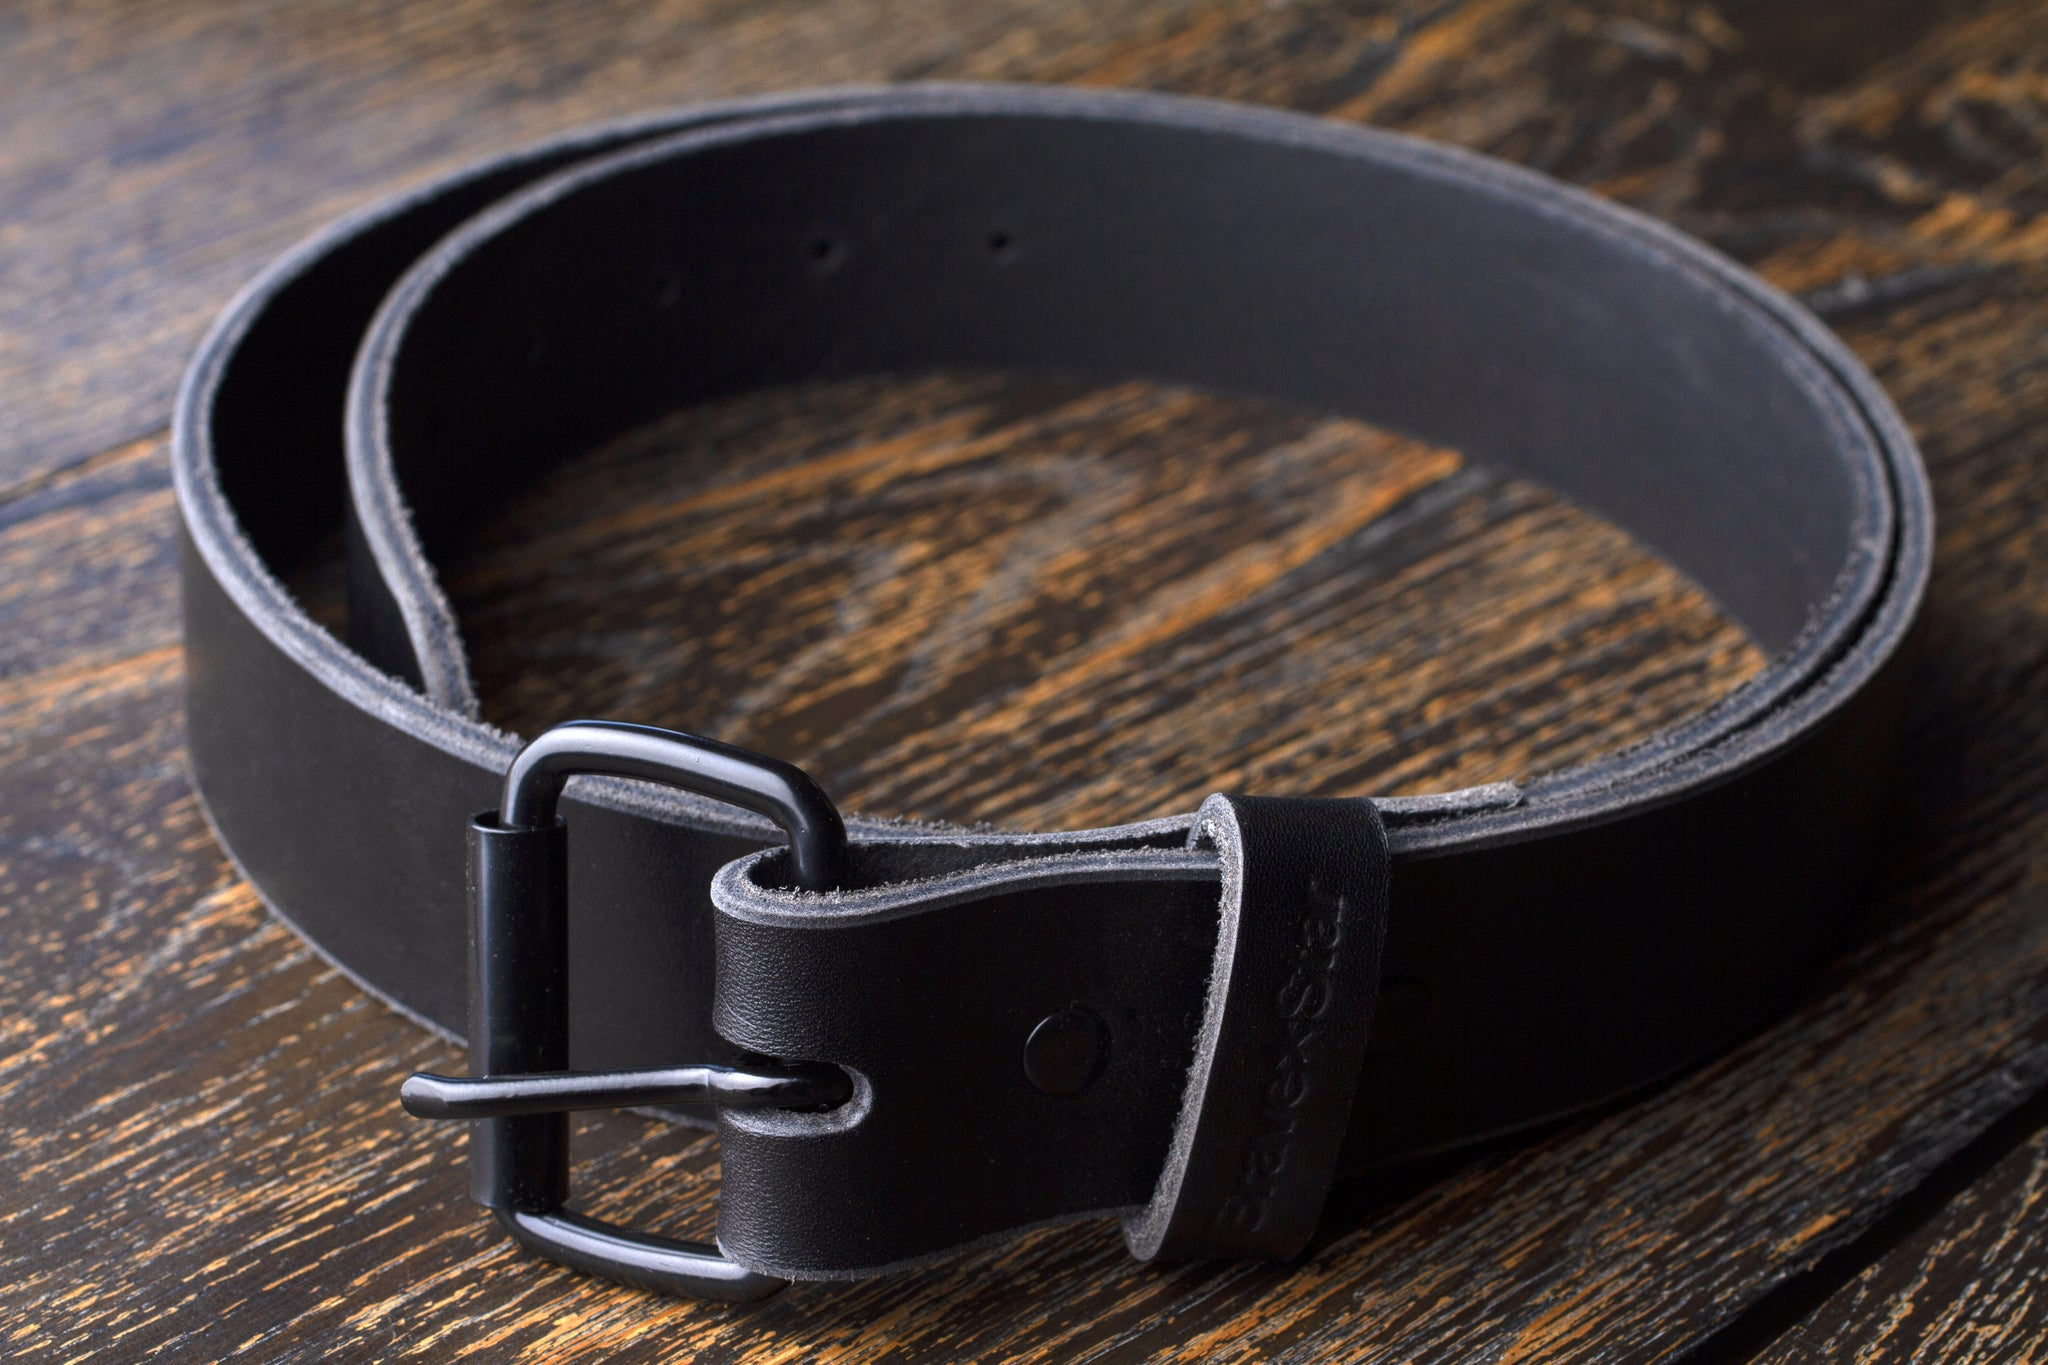 The Black Leather Belt